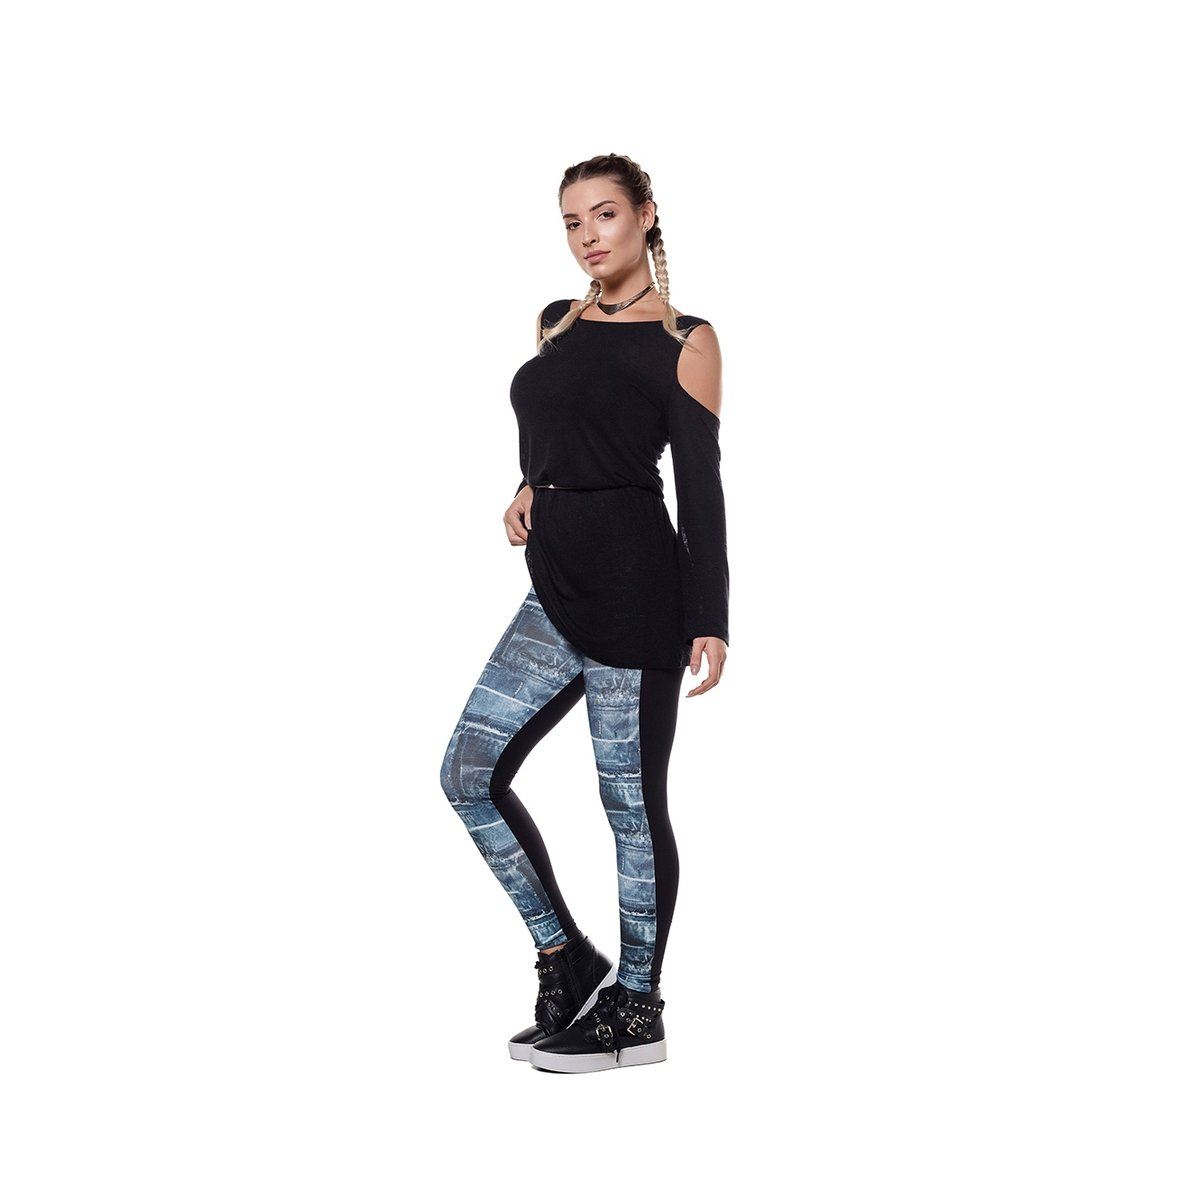 Legging Compression Abusy Jeans Legging Compression Feminina Azul 1wvdqRwS